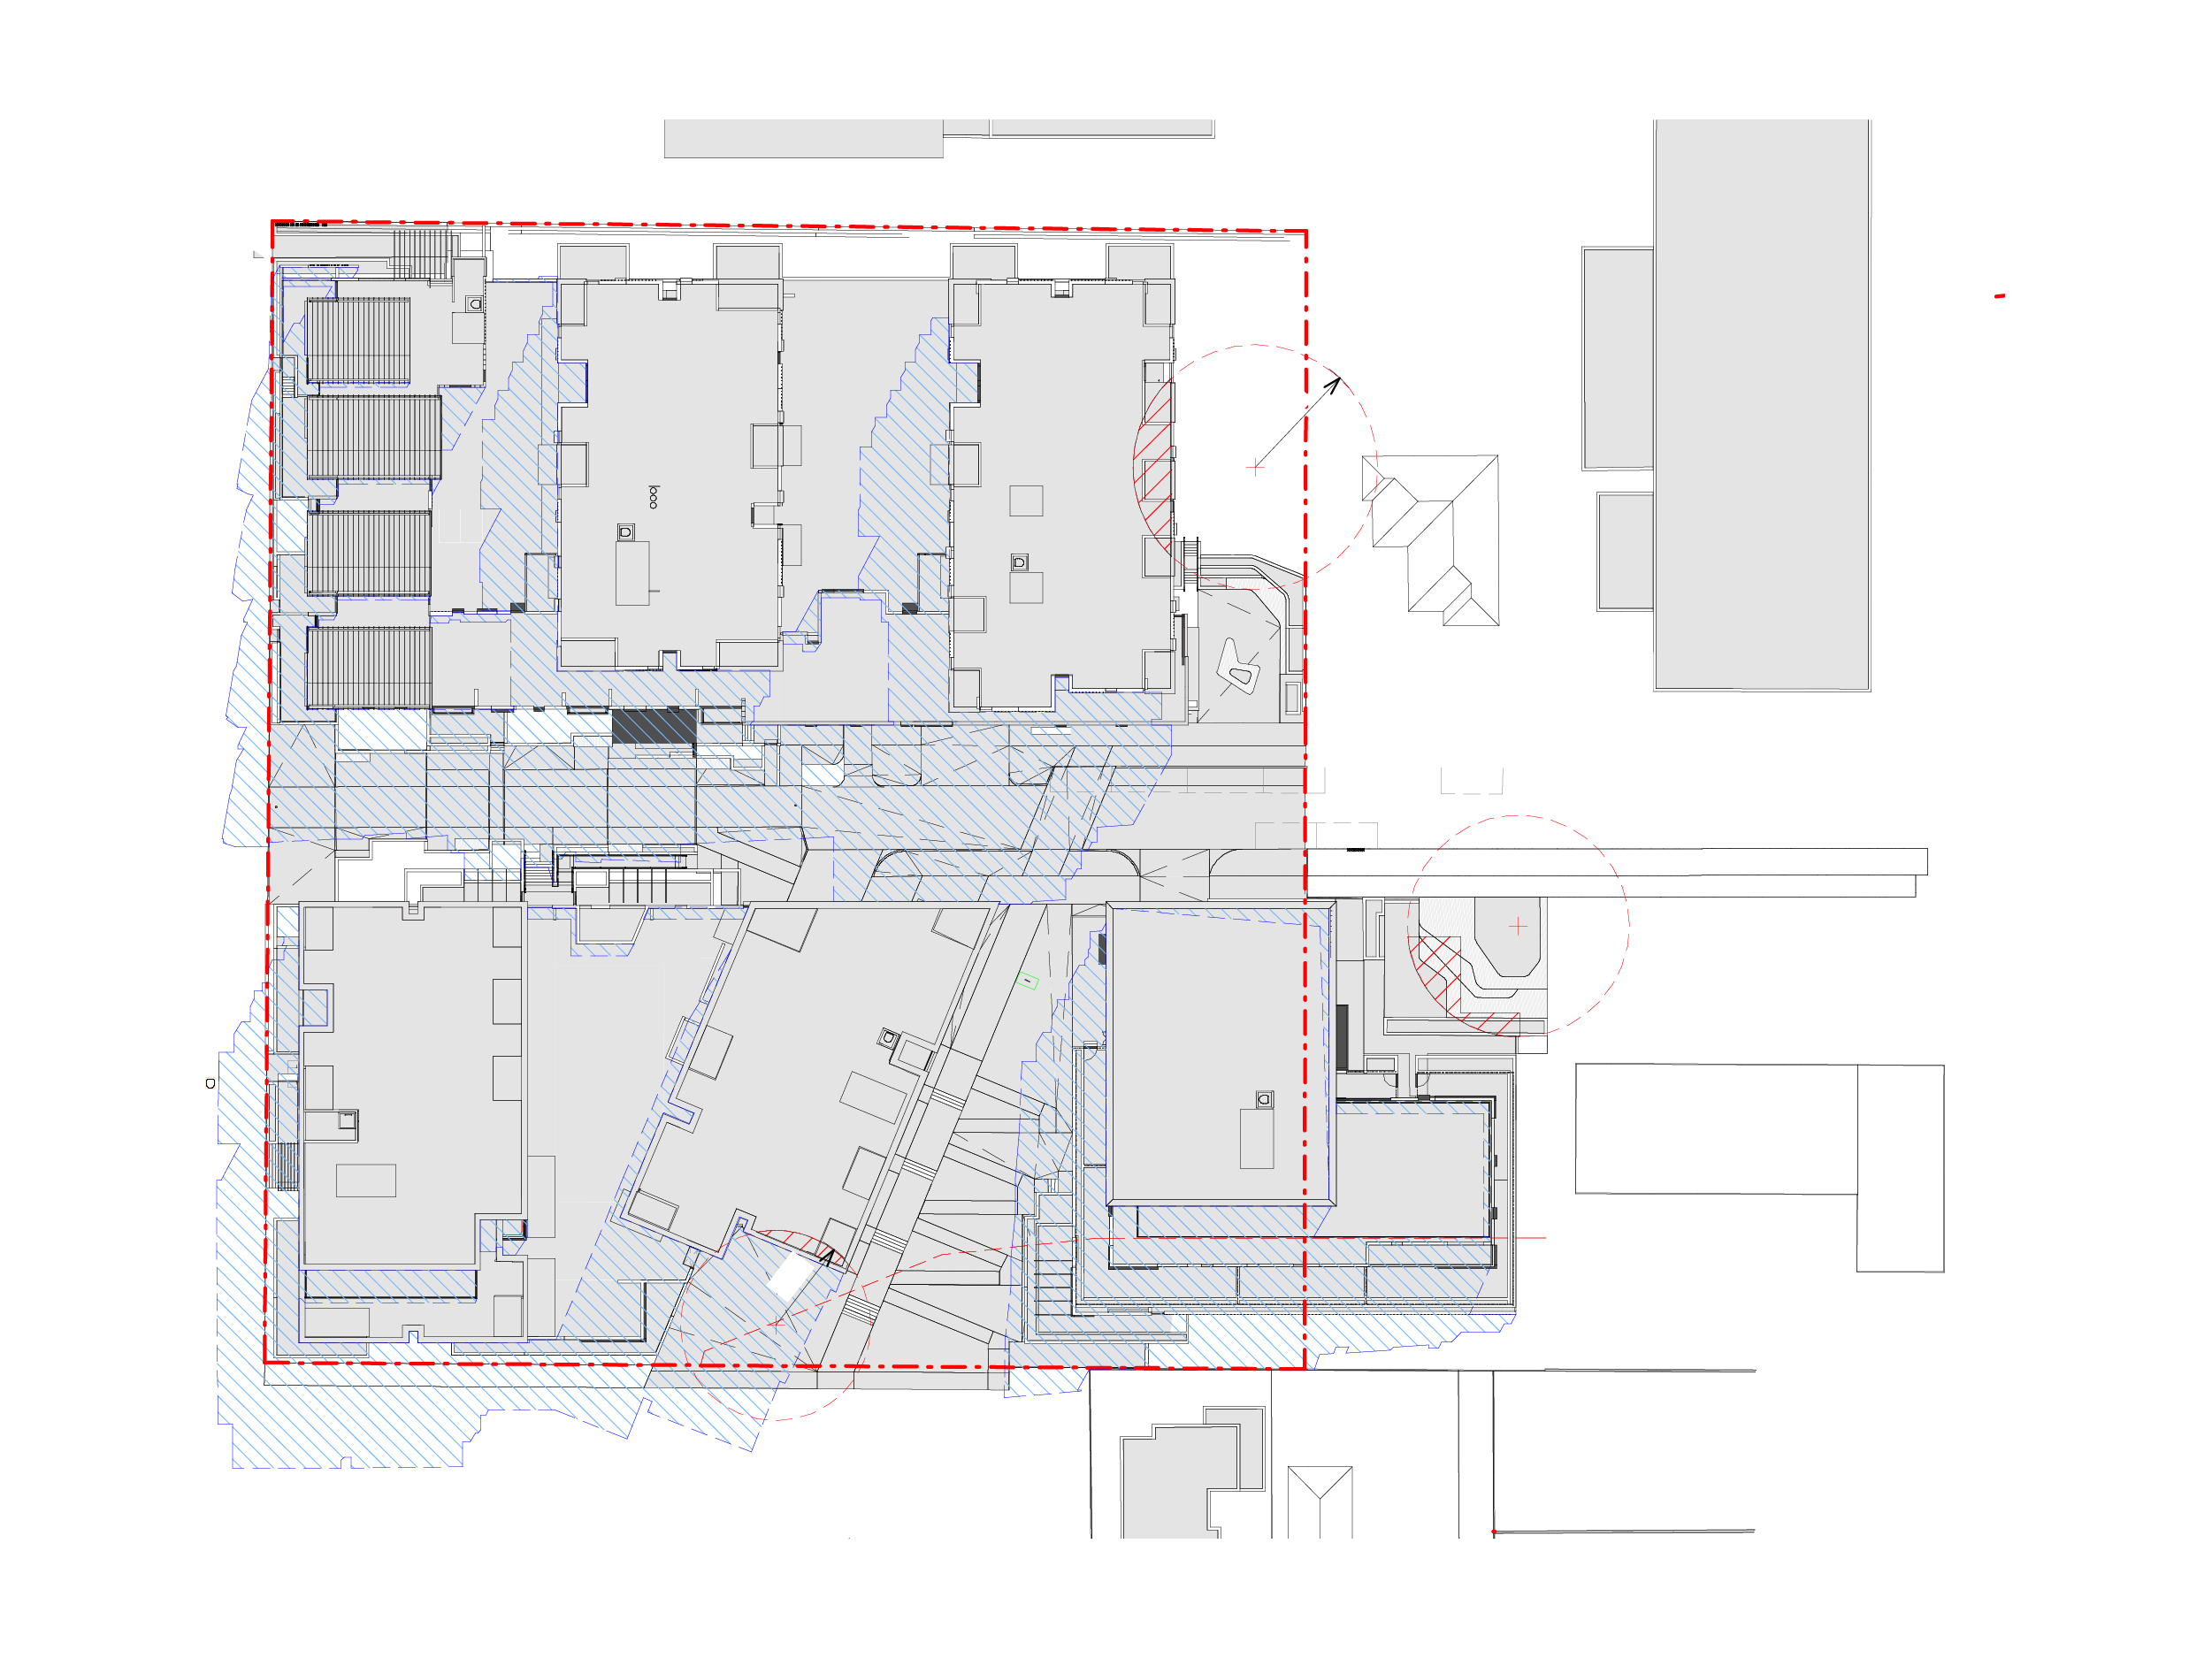 Diagram showing the shadows created by the new Bills Street development on 22 September at 11am